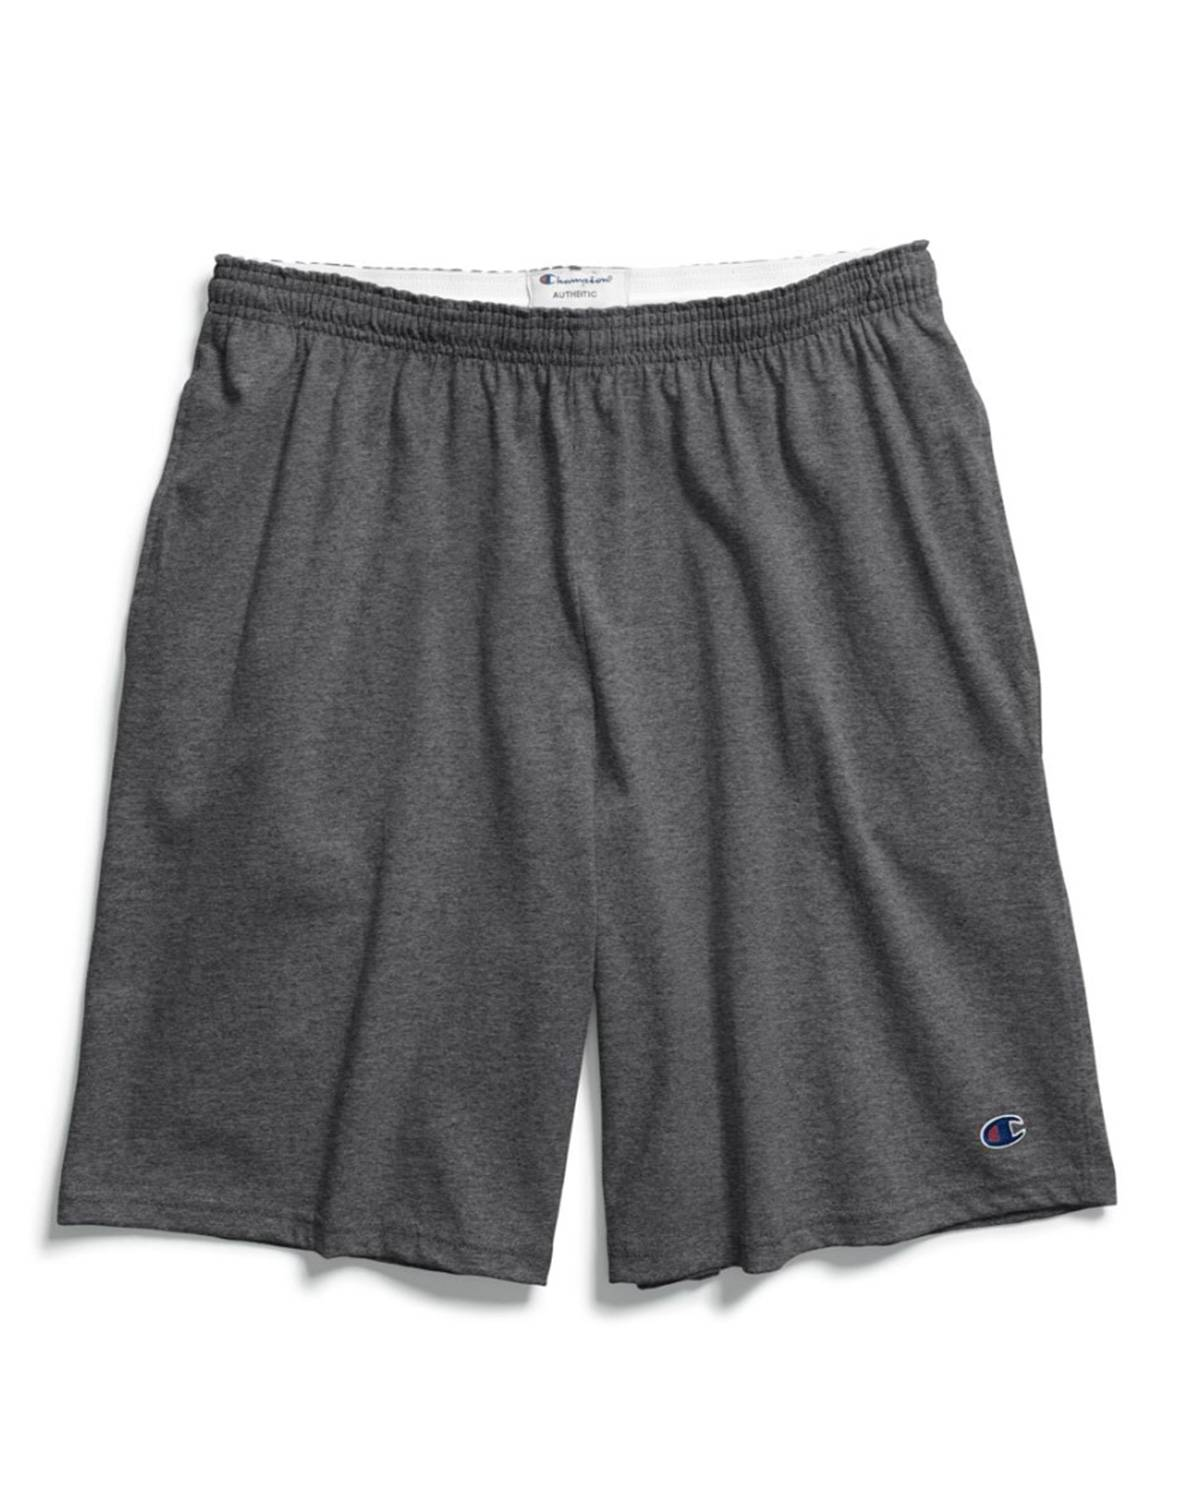 Champion 85653 Authentic Mens Shorts with Pockets - Granite Heather - S 85653